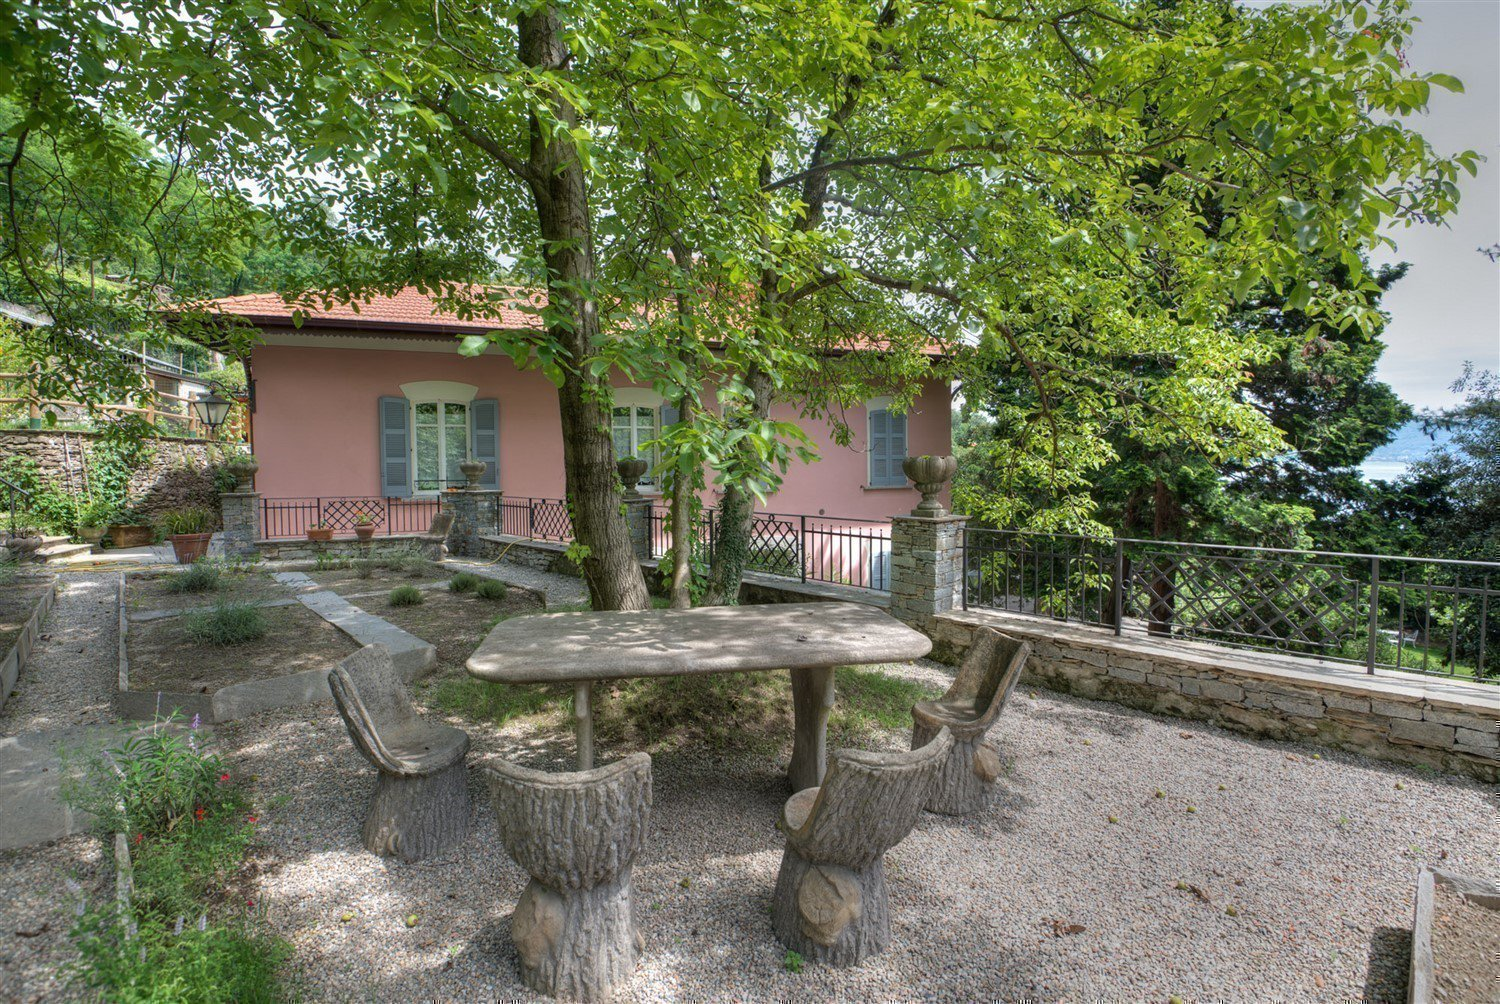 Historic villa with guesthouse and land for sale in Verbania - villa with garden